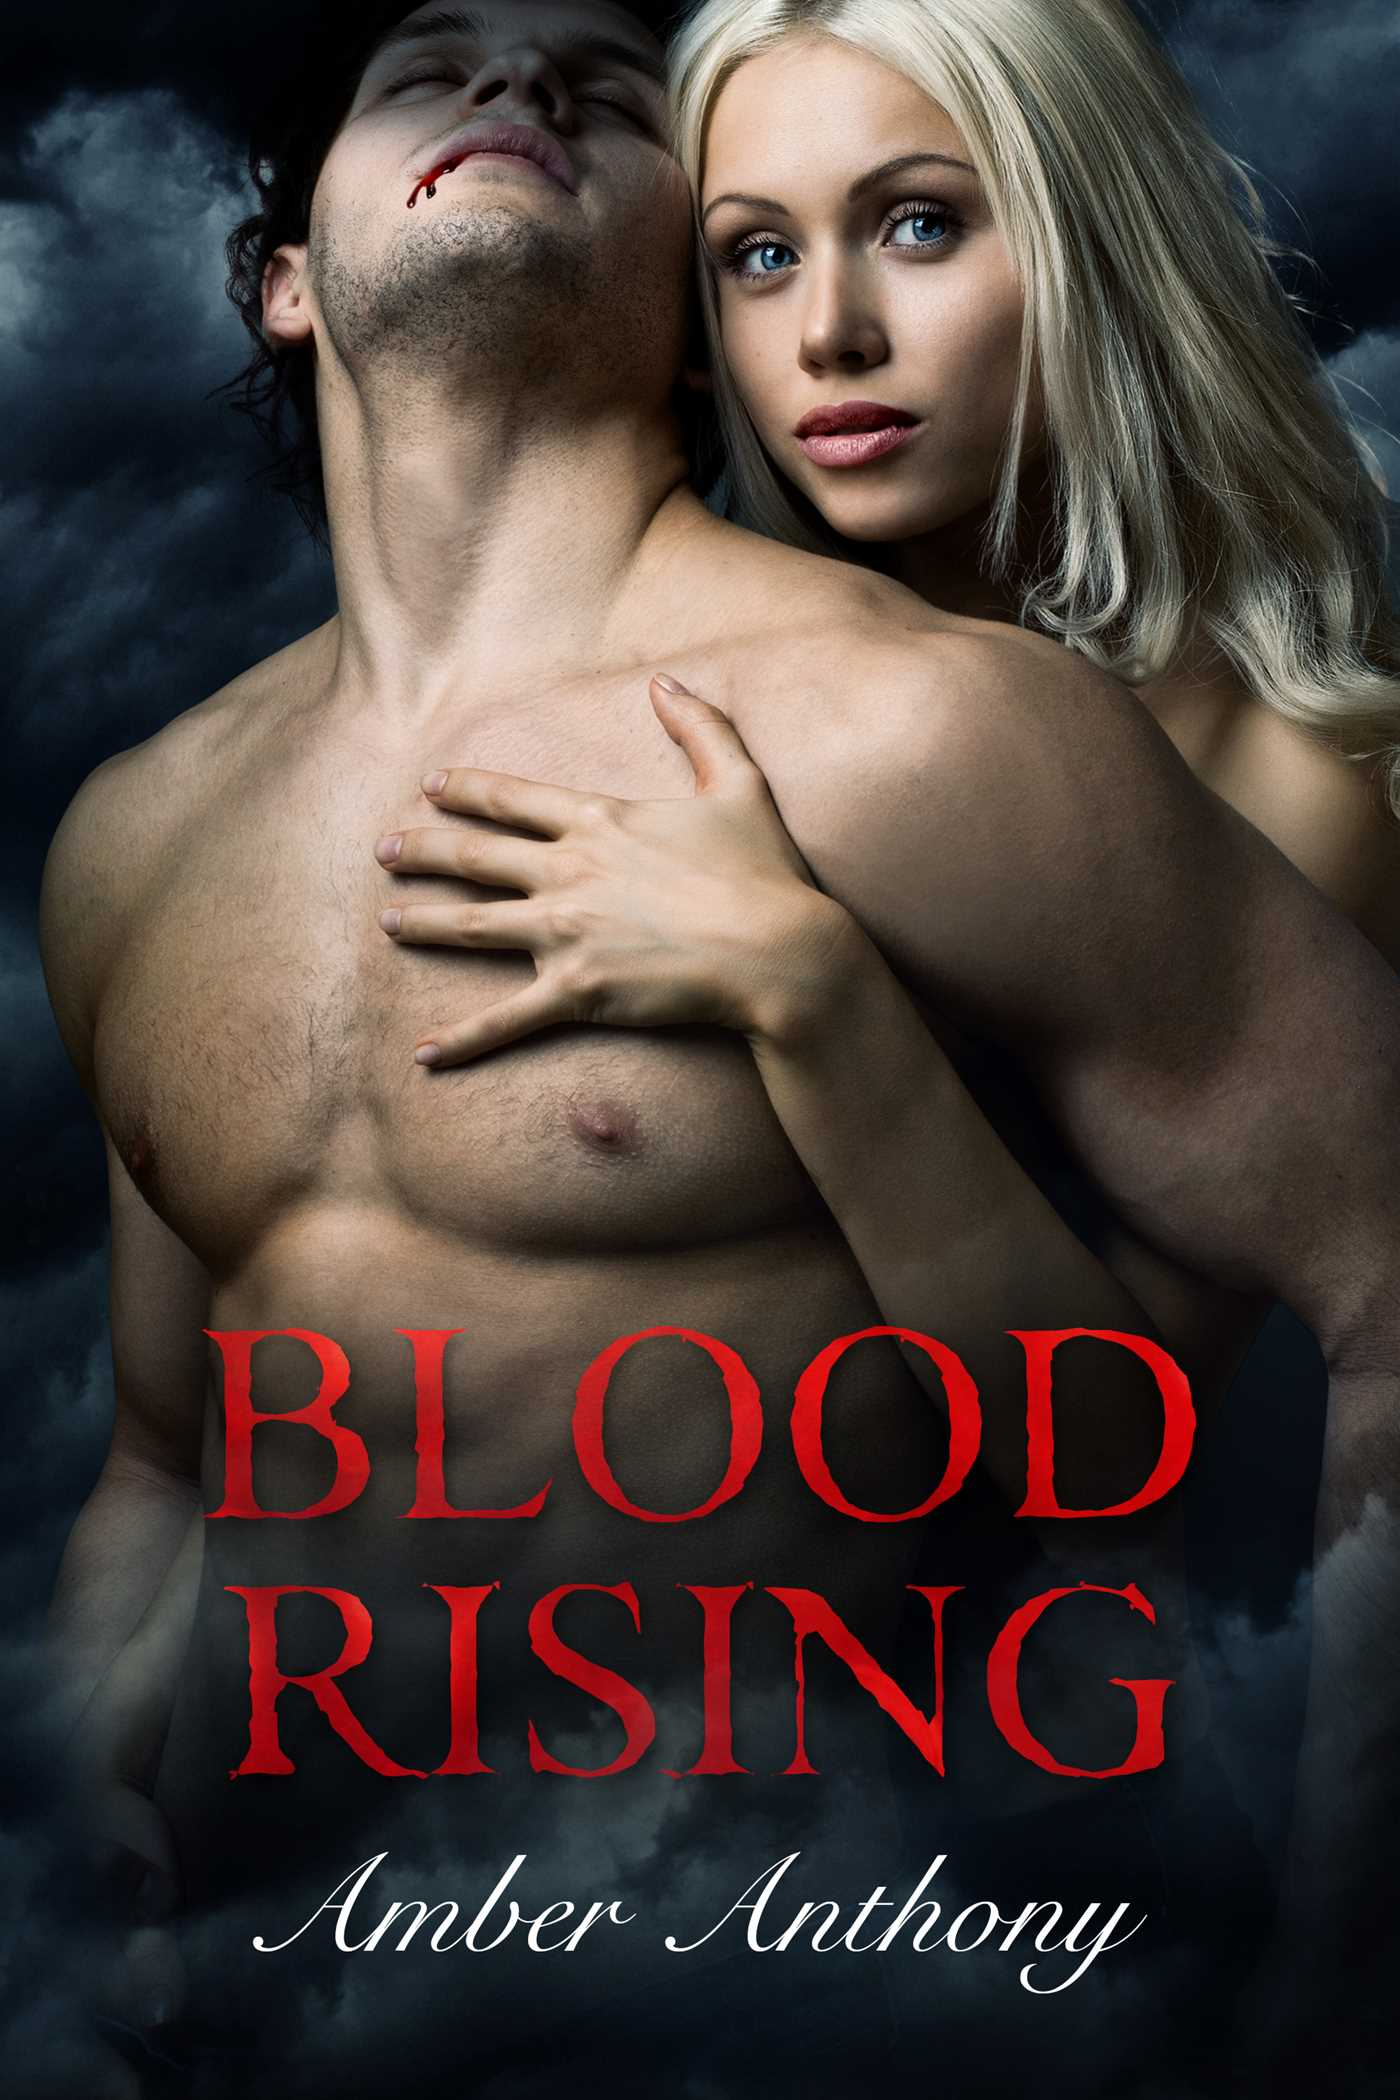 Blood rising 9781682992364 hr